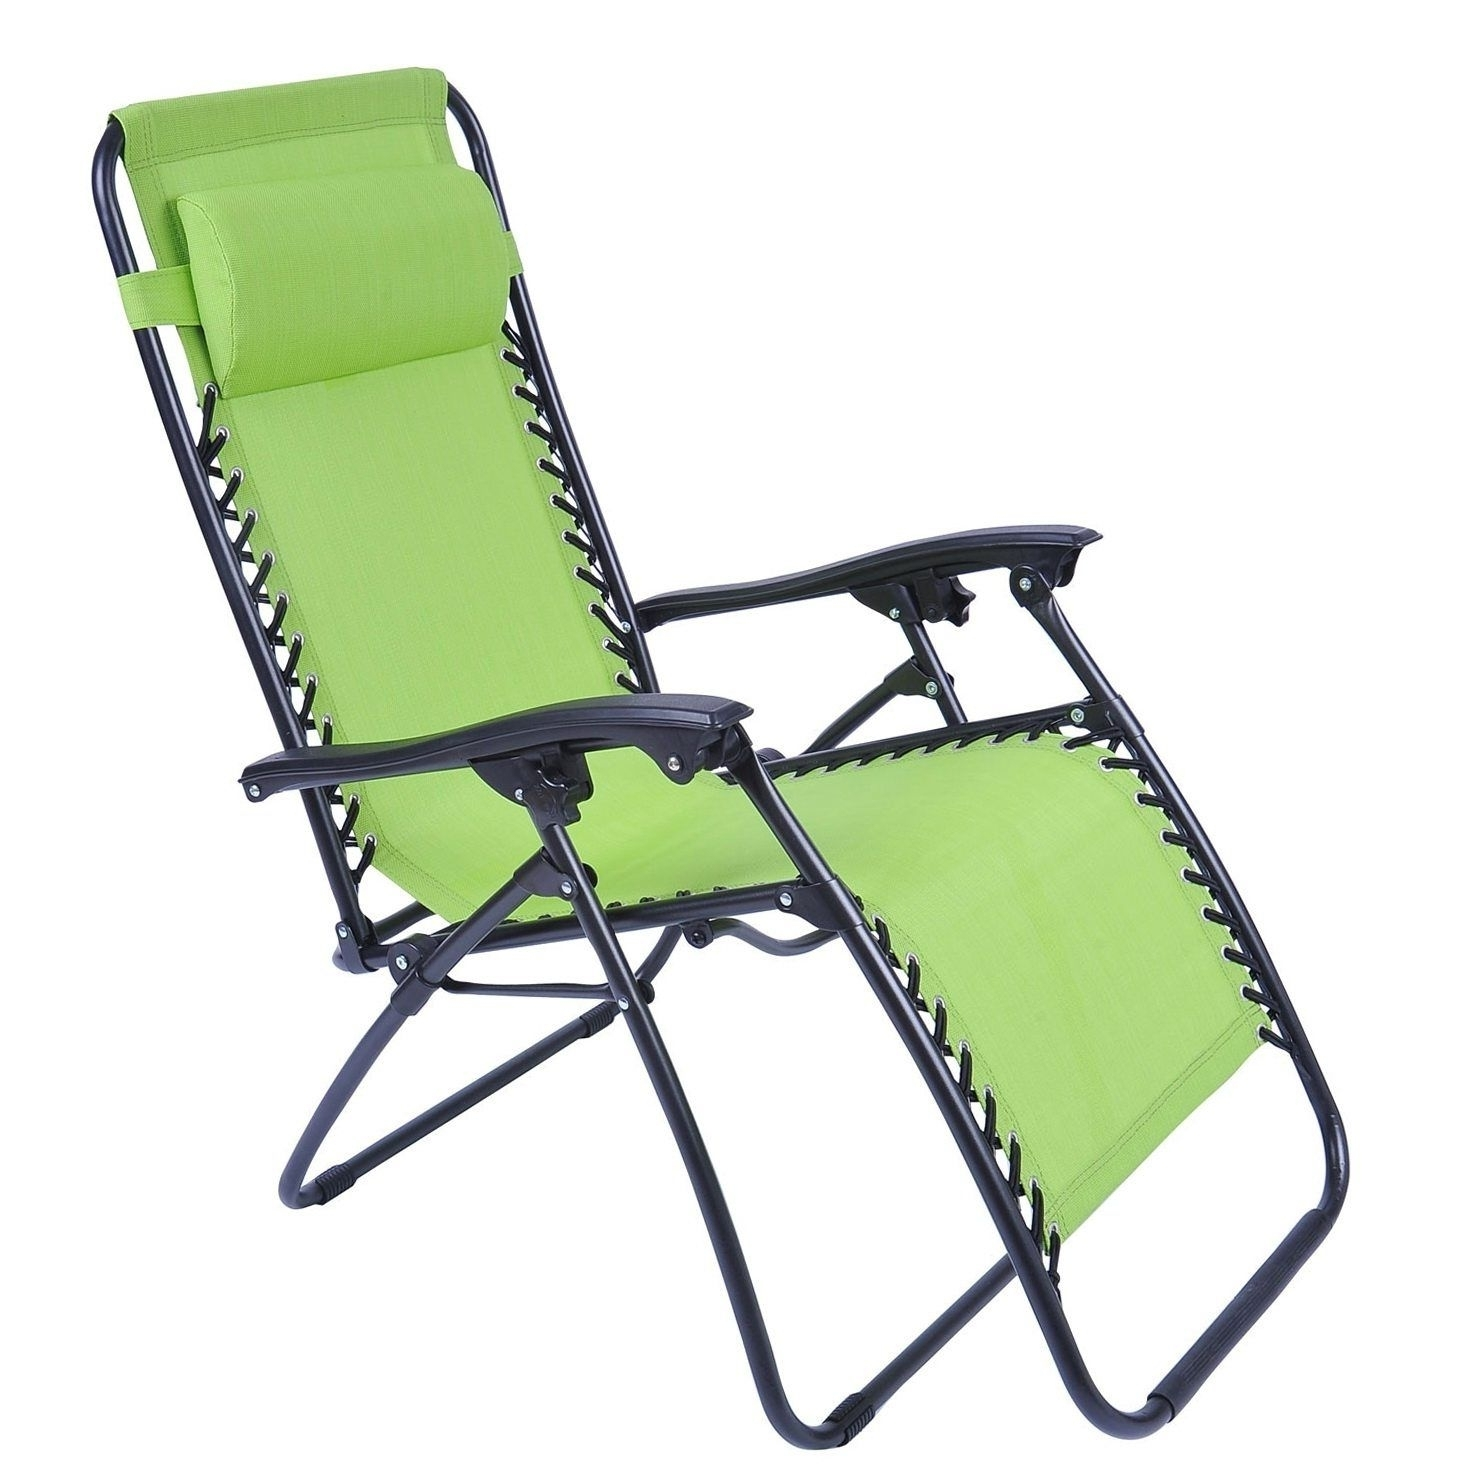 Popular Chaise Lounge Reclining Chairs For Outdoor Throughout Lounge Chair Outdoor Folding Folding Chaise Lounge Chair Patio (View 10 of 15)